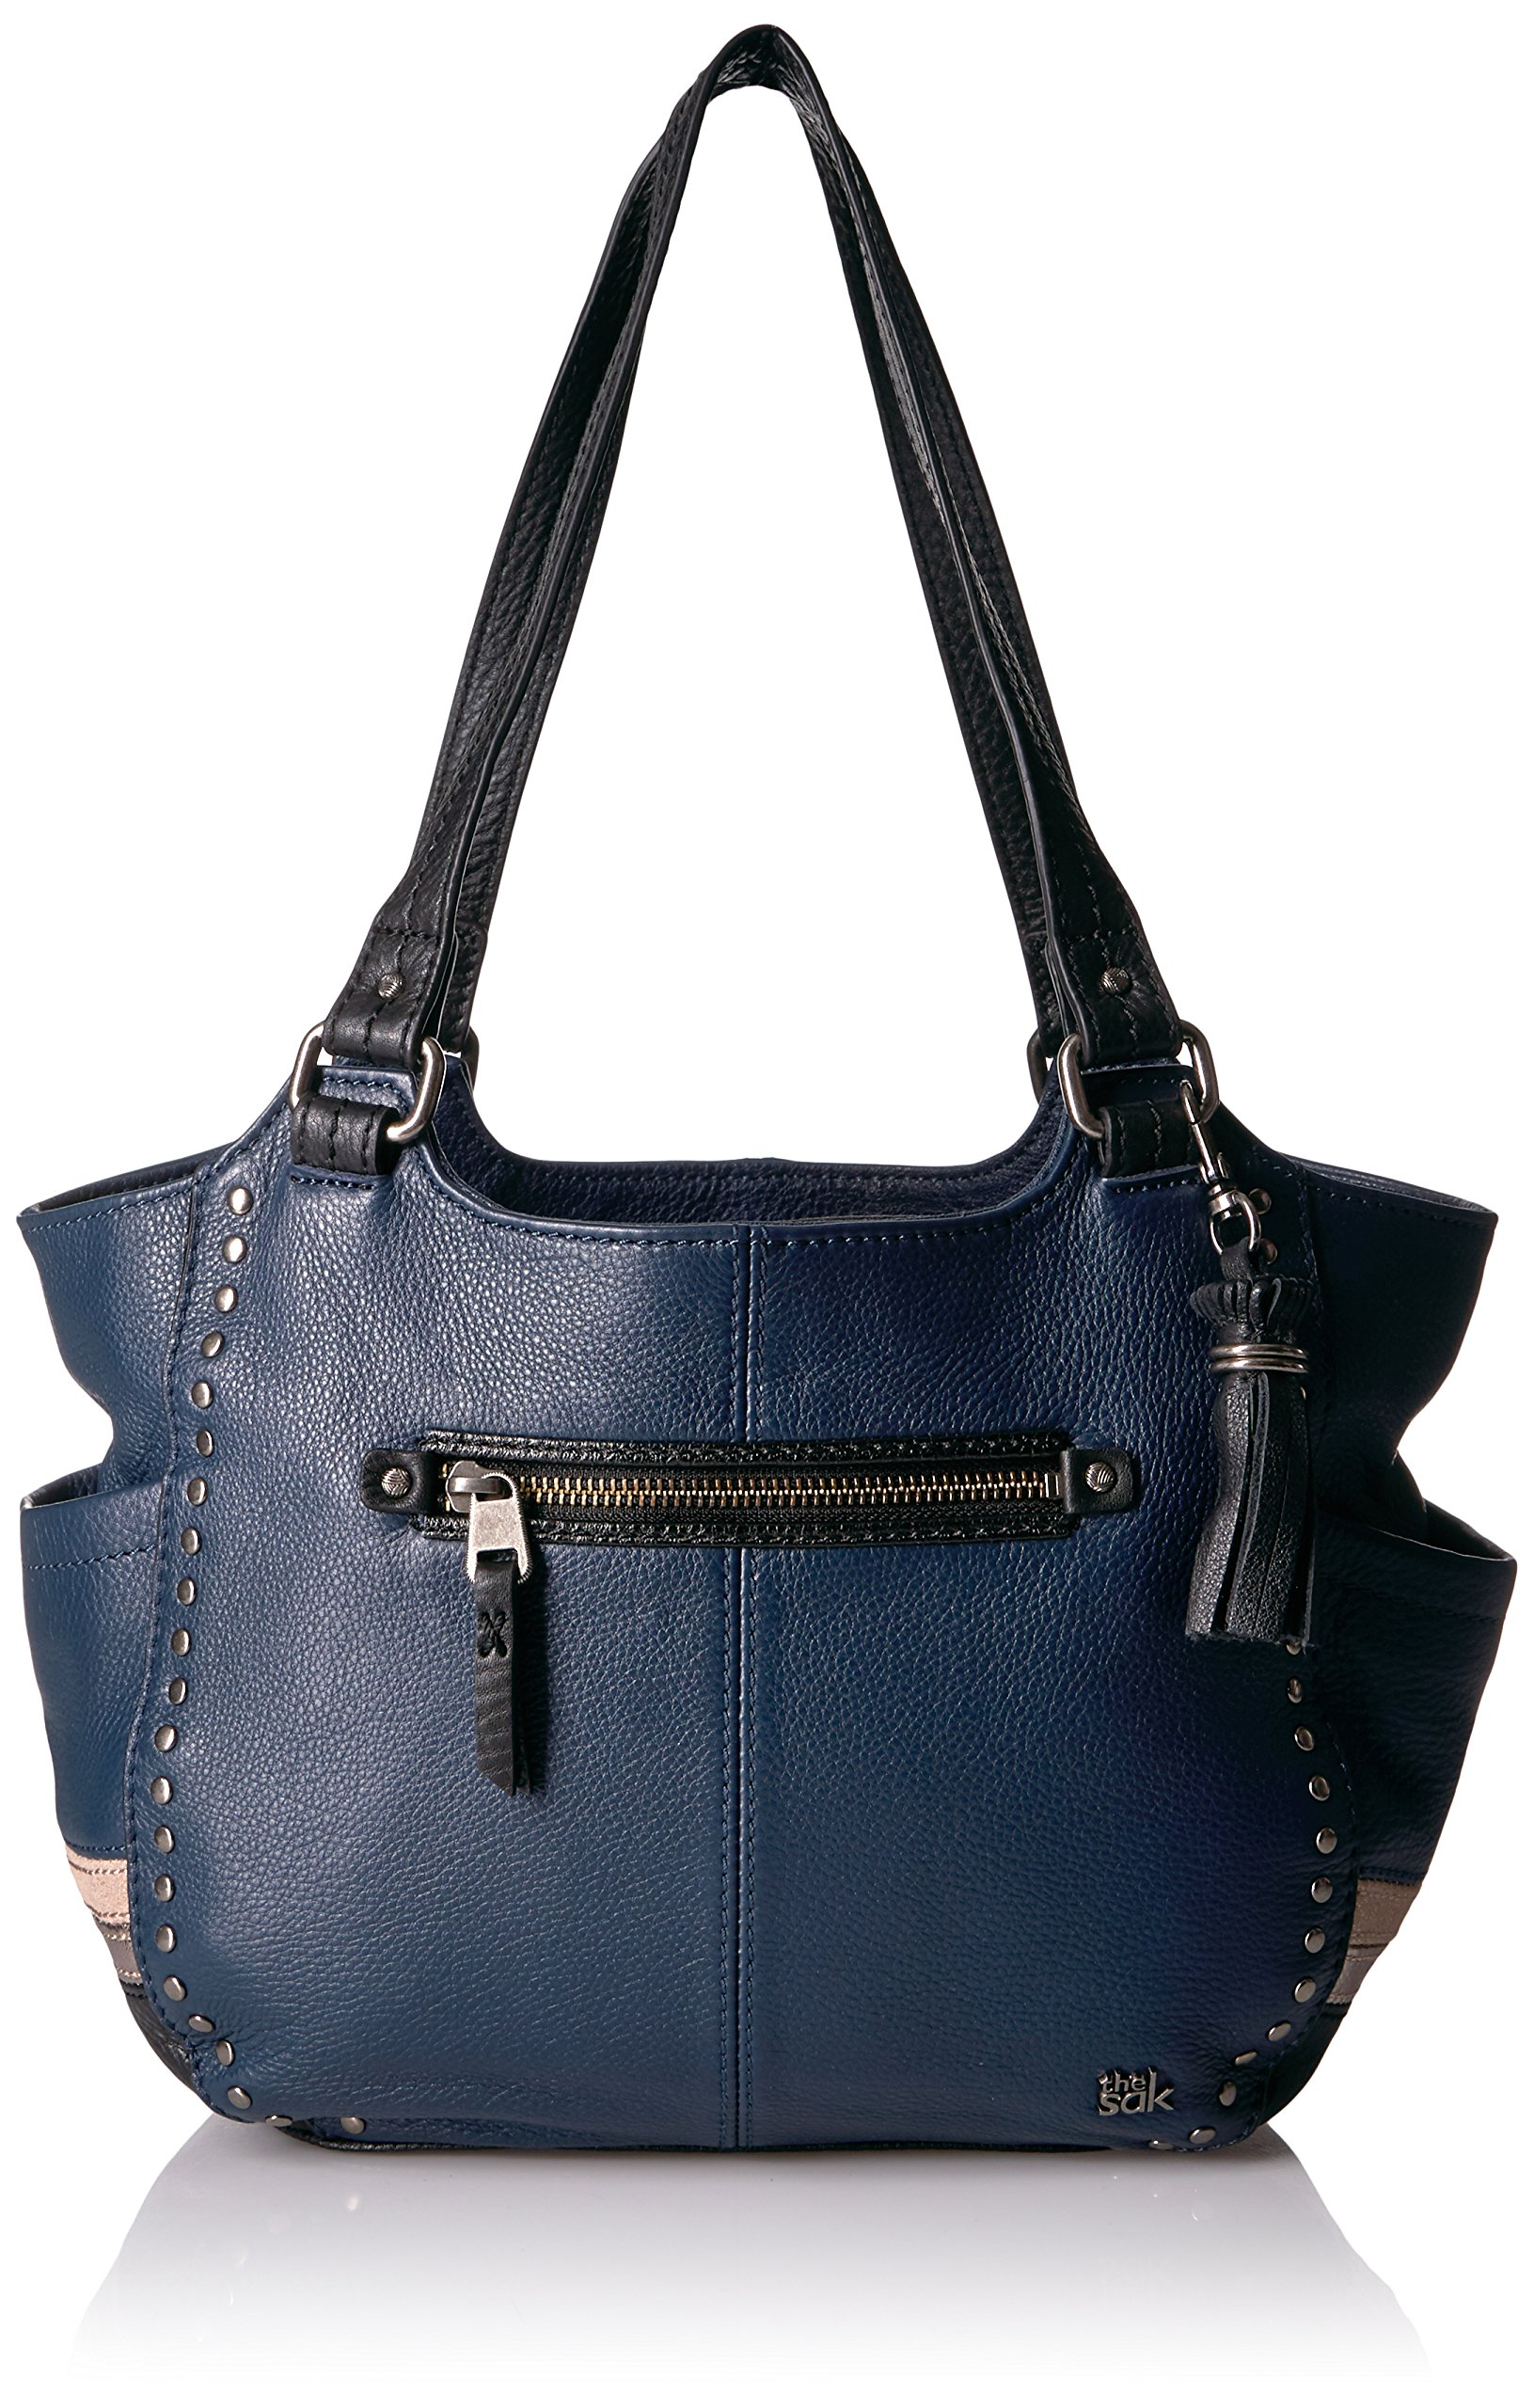 The Sak Kendra Satchel, Indigo Block by The Sak